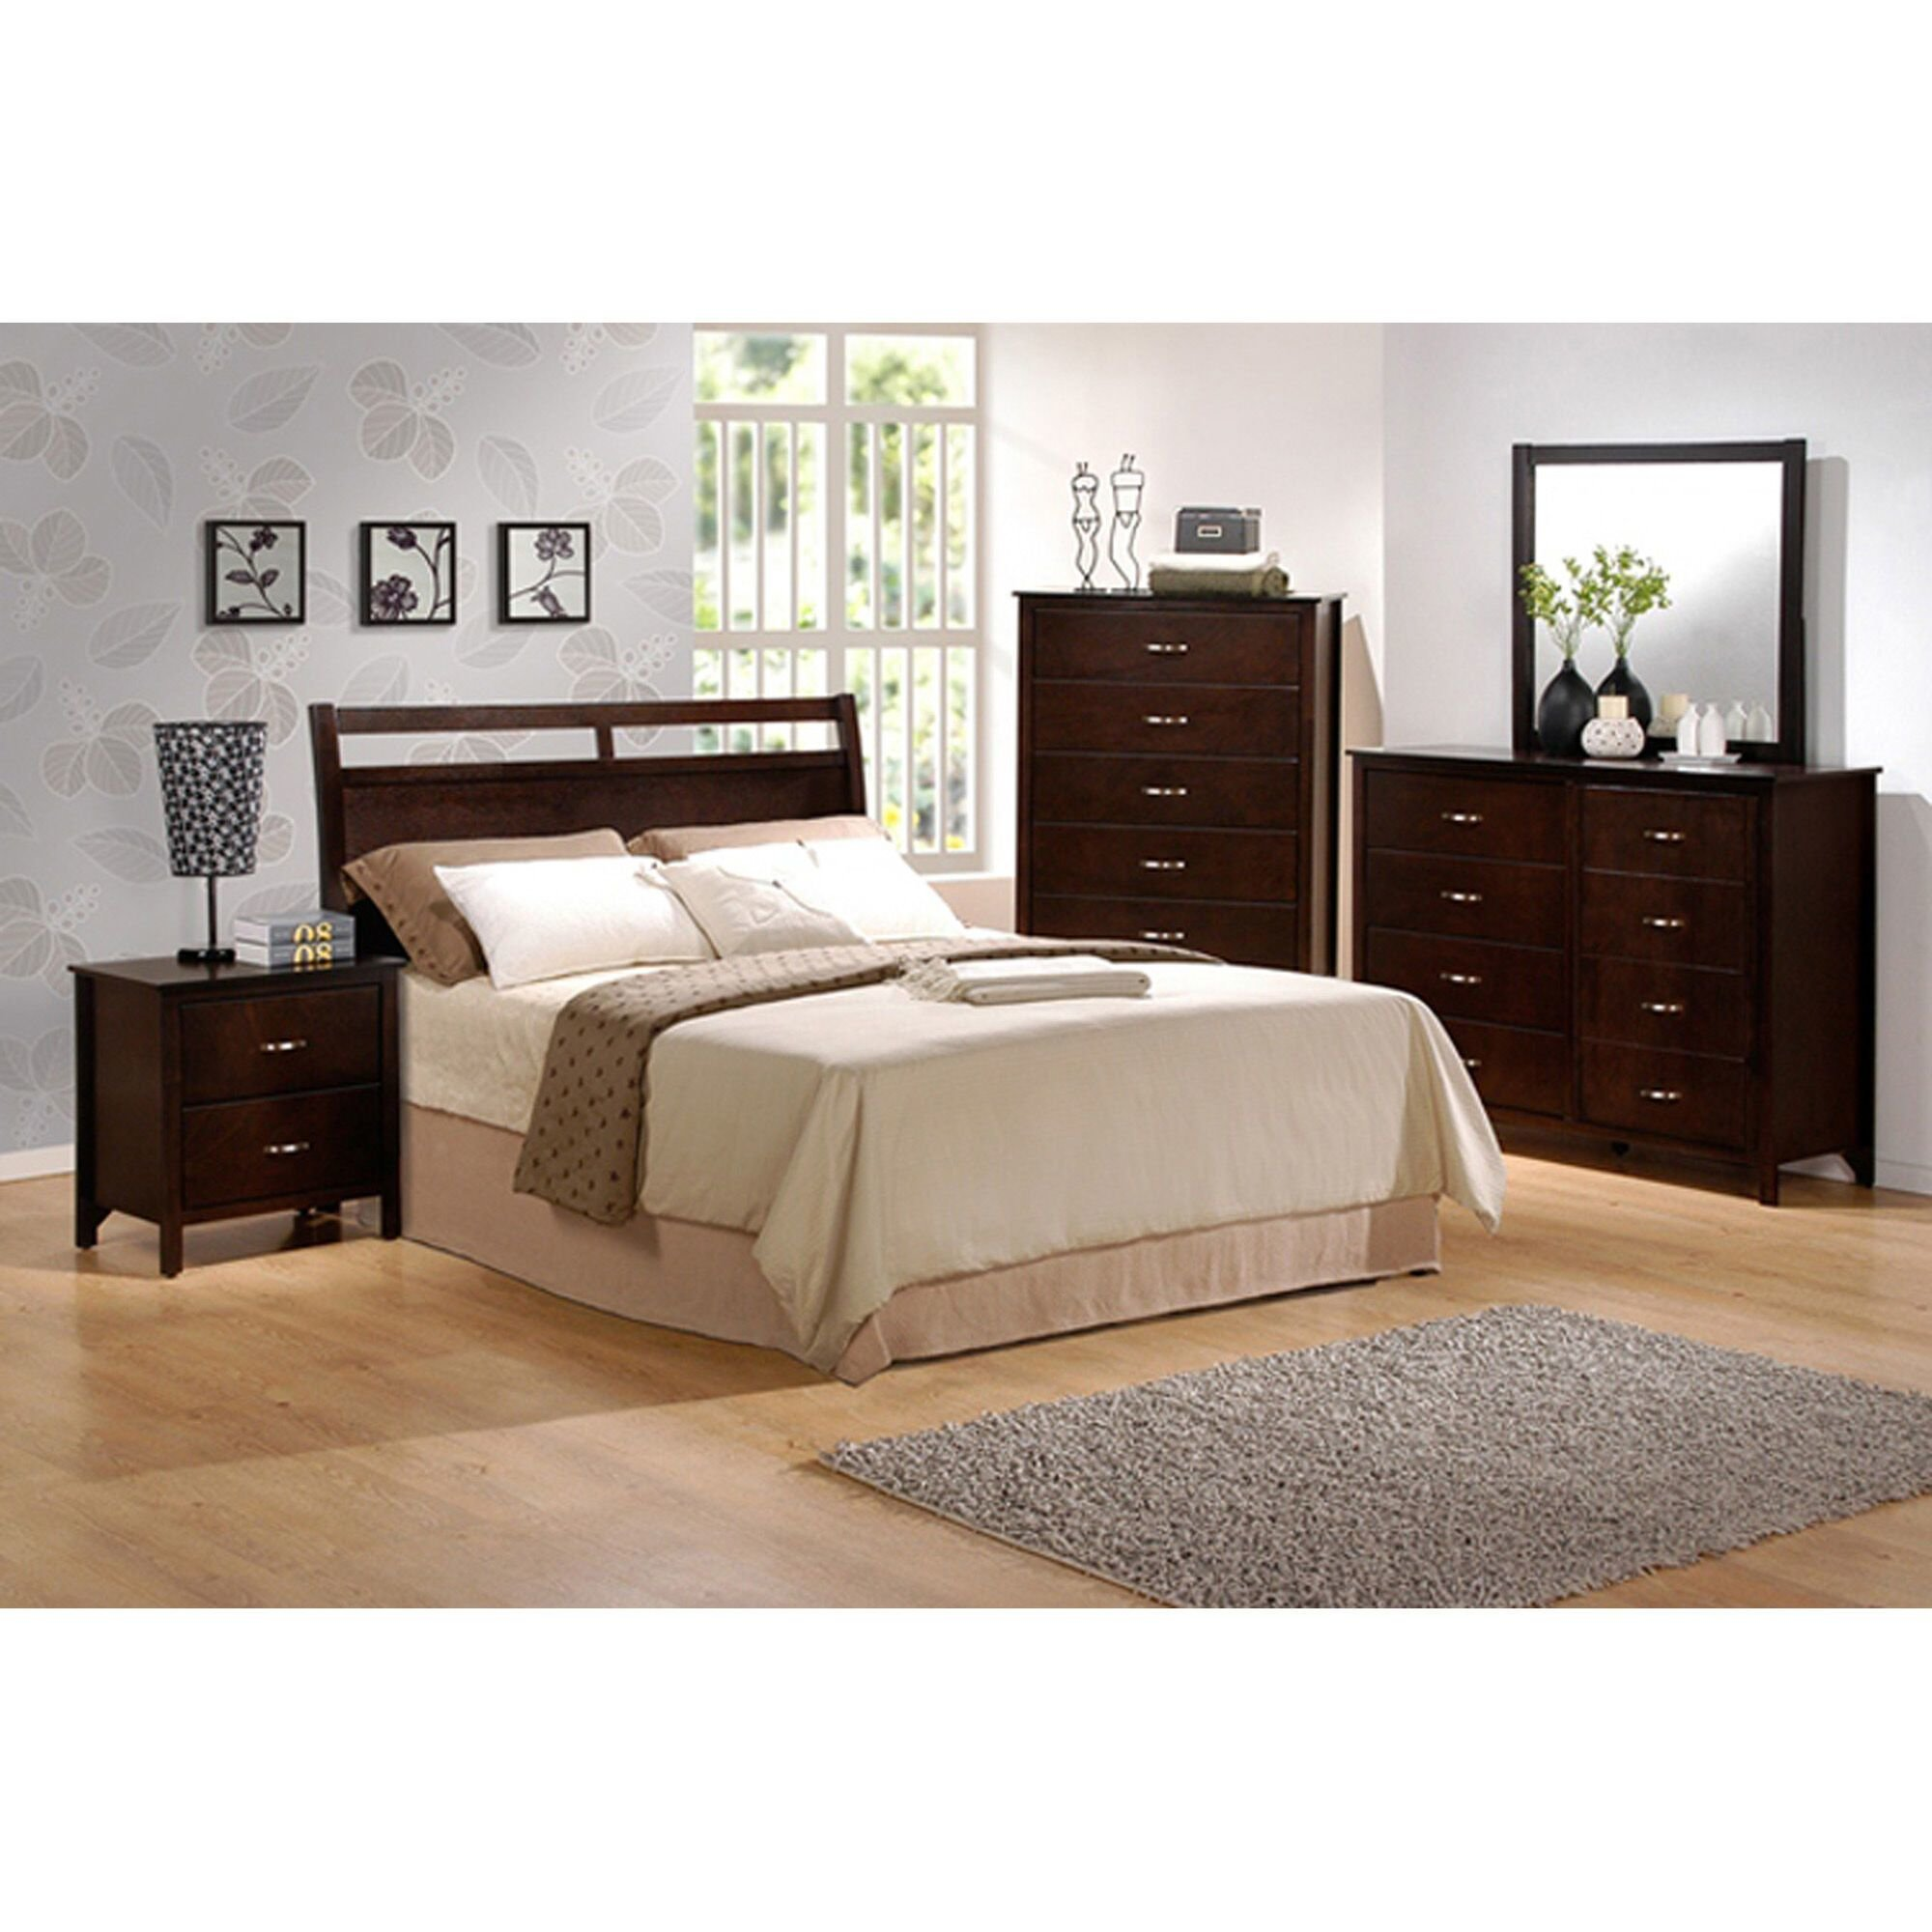 Best Aarons Bedroom Sets 2018 Home Comforts With Pictures